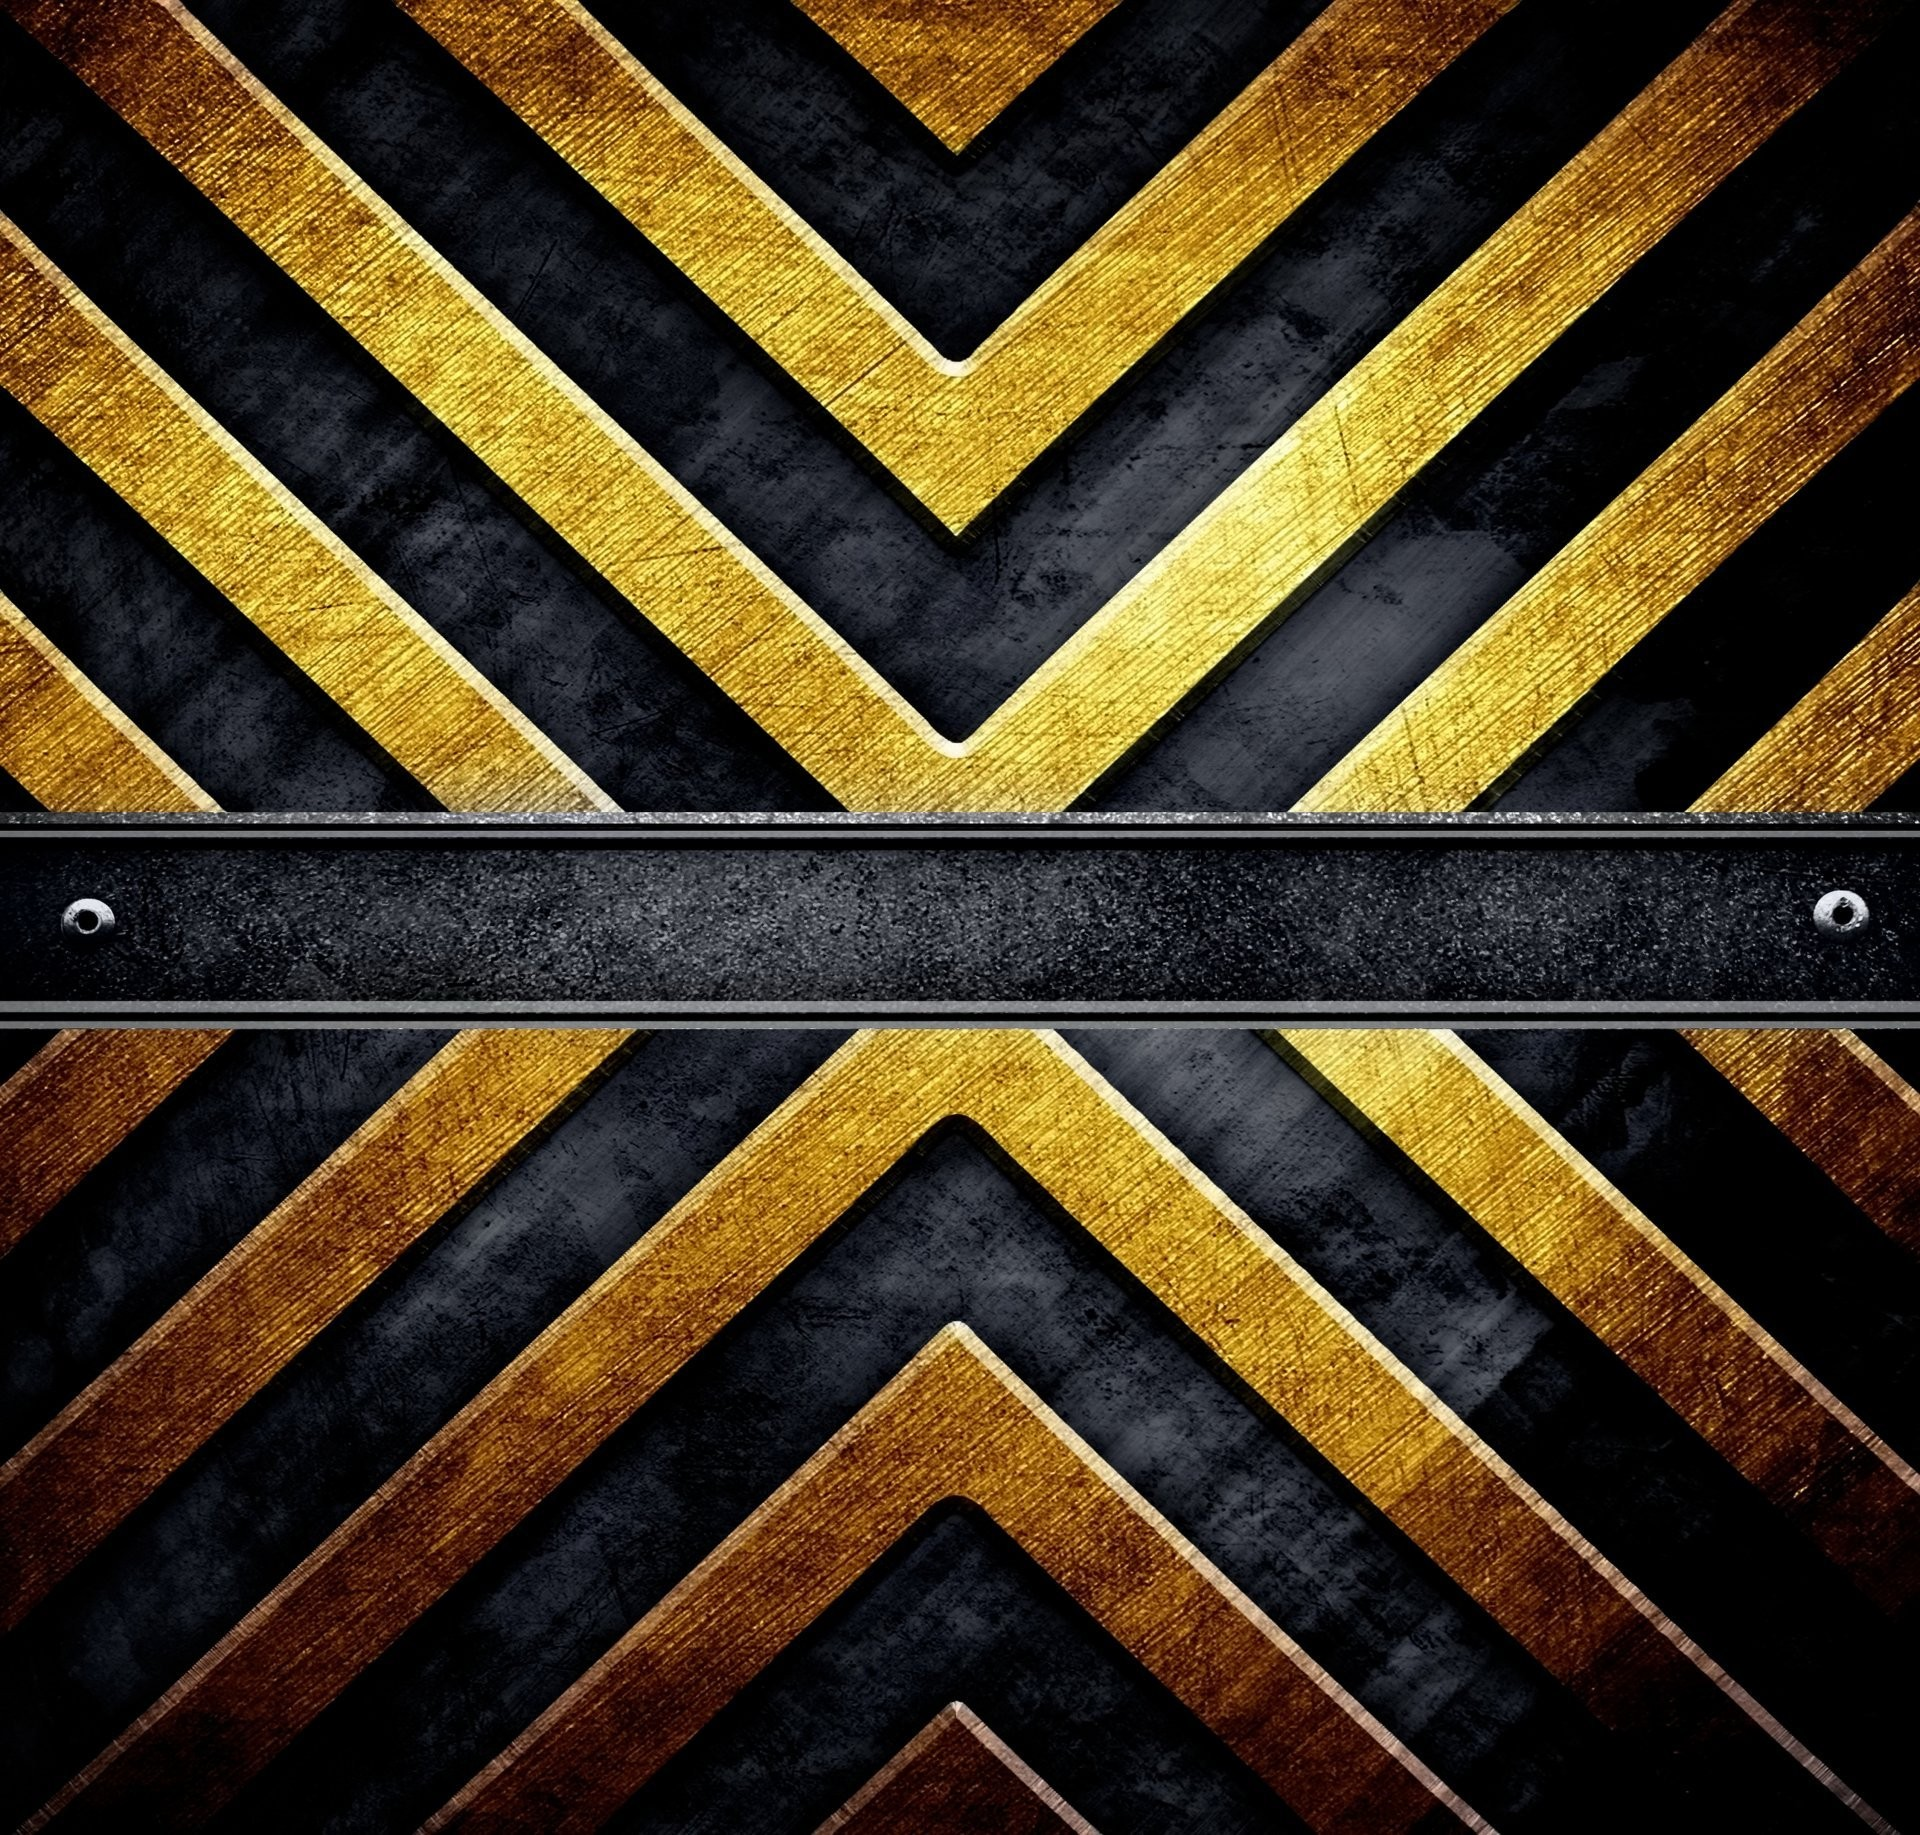 Steel Background ·① Download Free Cool HD Backgrounds For